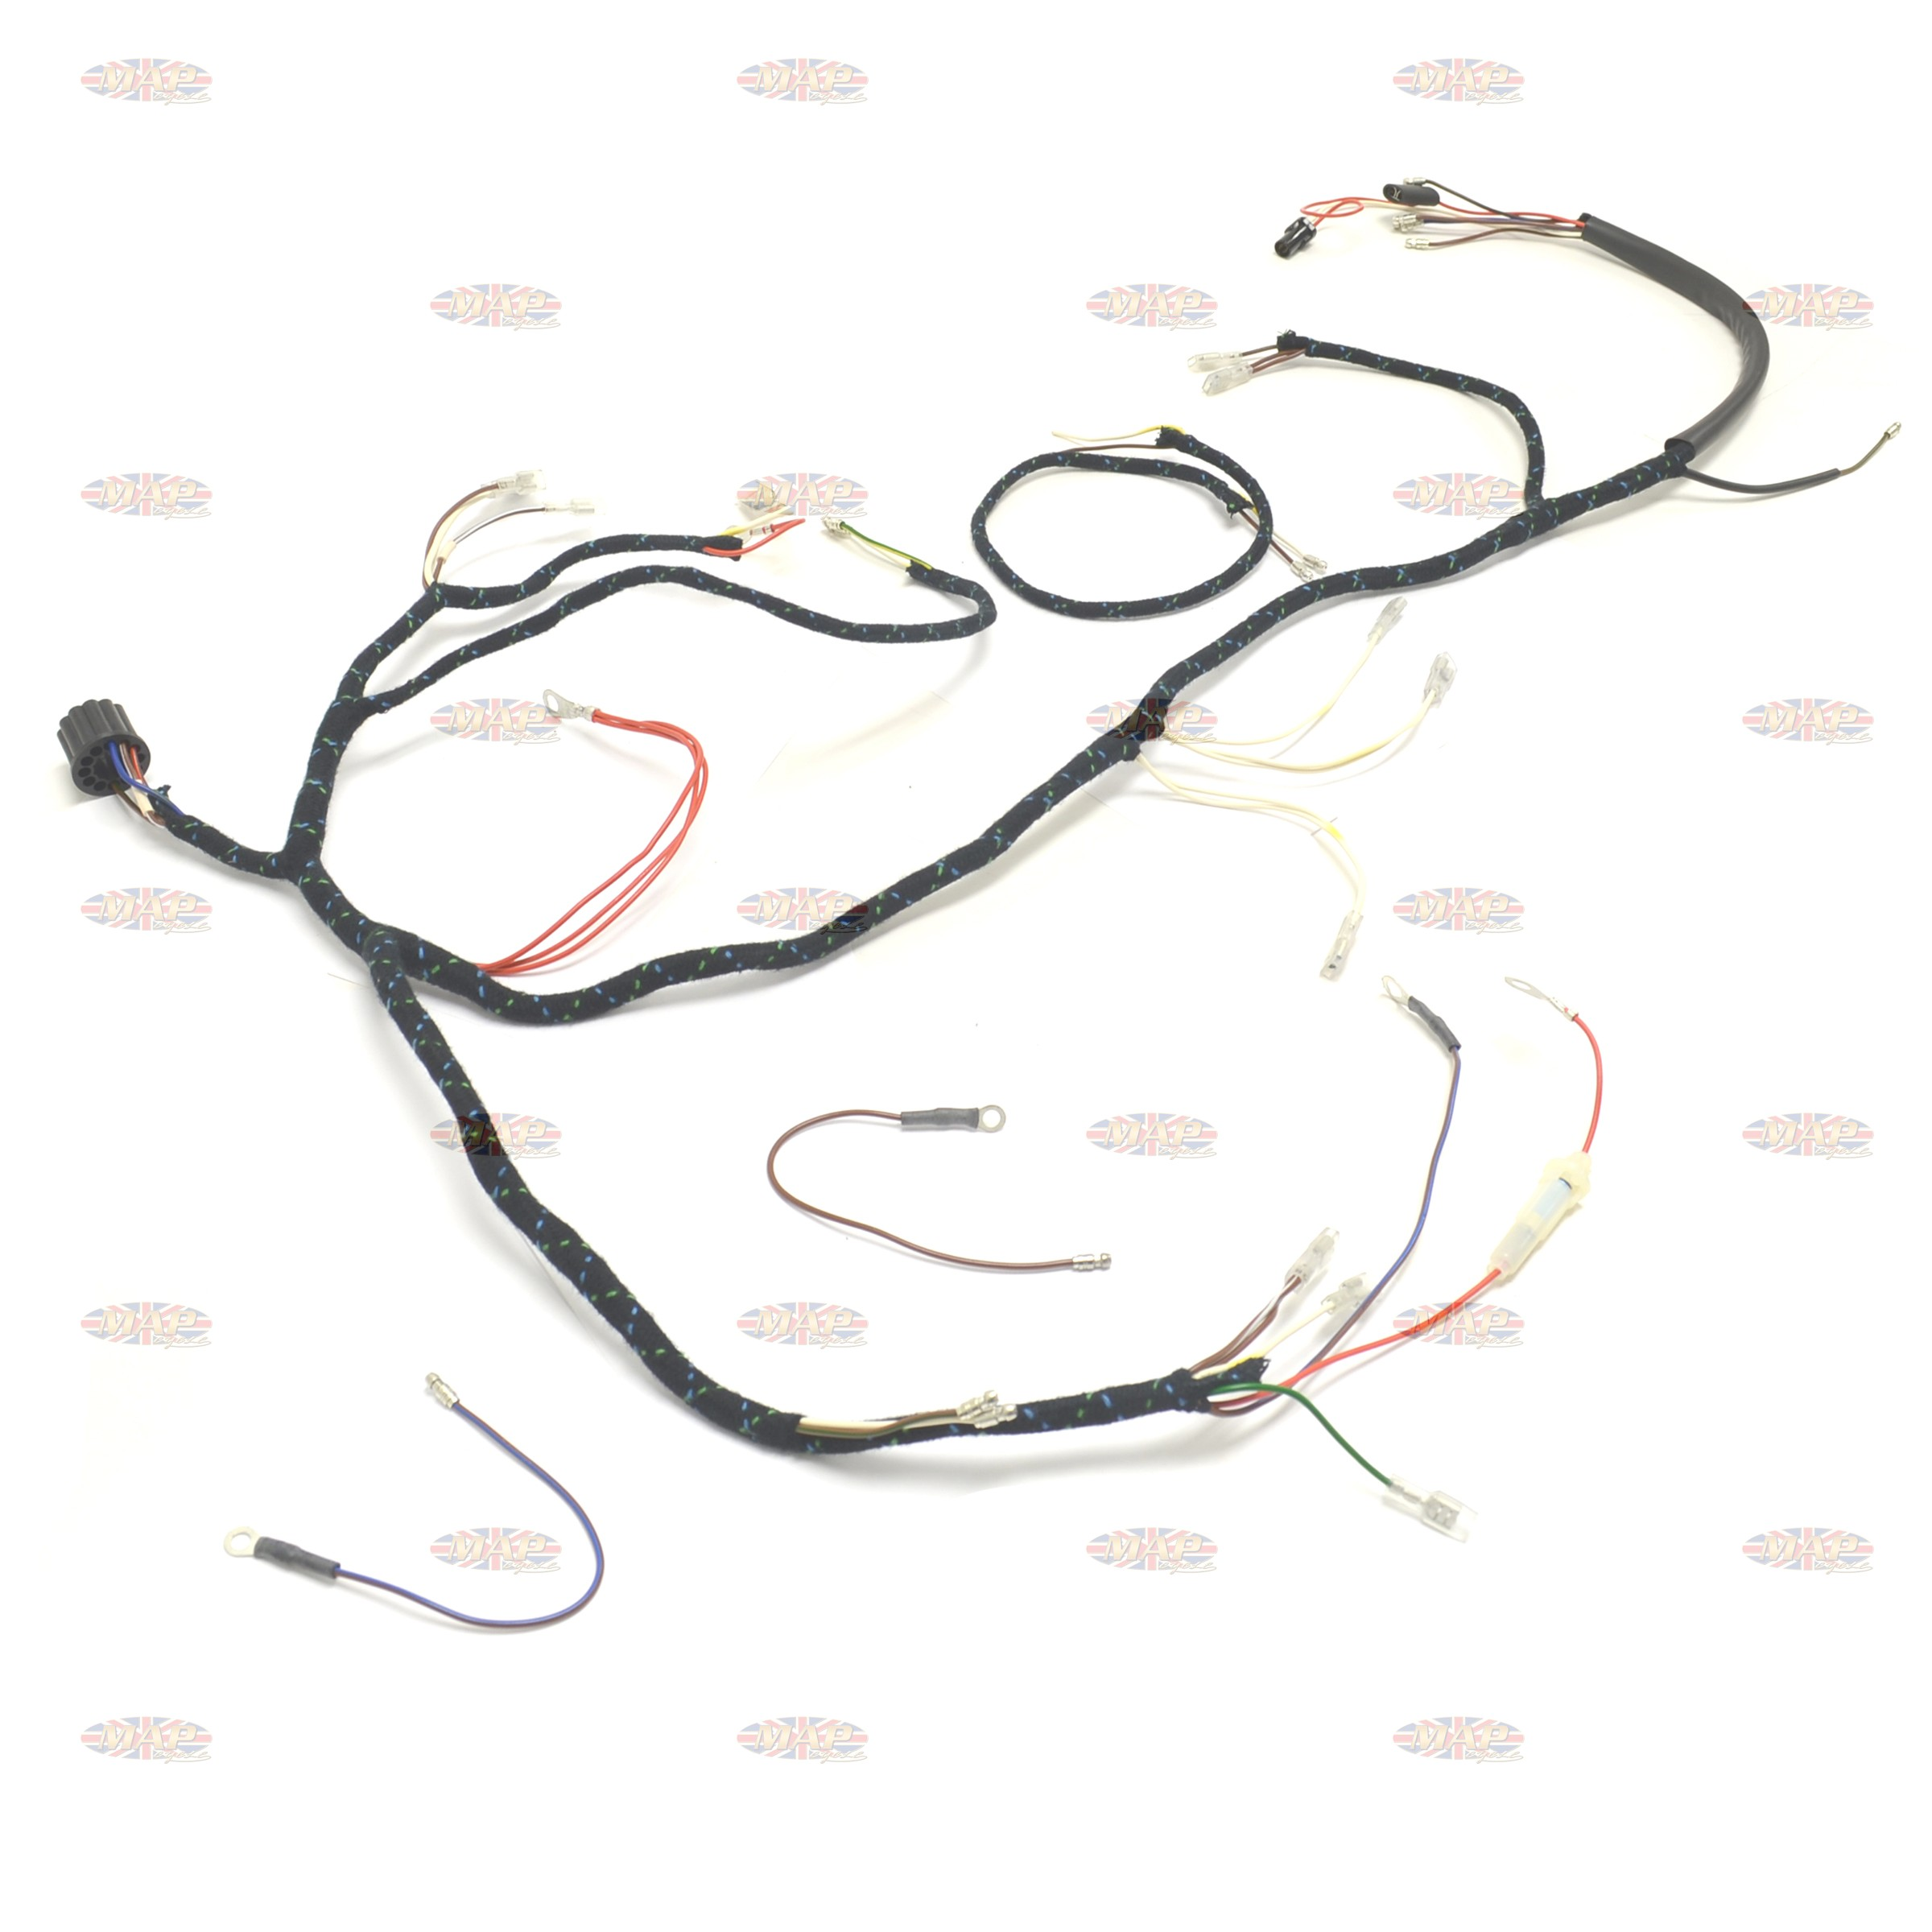 triumph 1966 t90 t100 t120 tr6 uk made 12 volt wiring harness bba triumph 1966 t90 t100 t120 tr6 uk made 12 volt wiring harness triumph t140 wiring harness at couponss.co